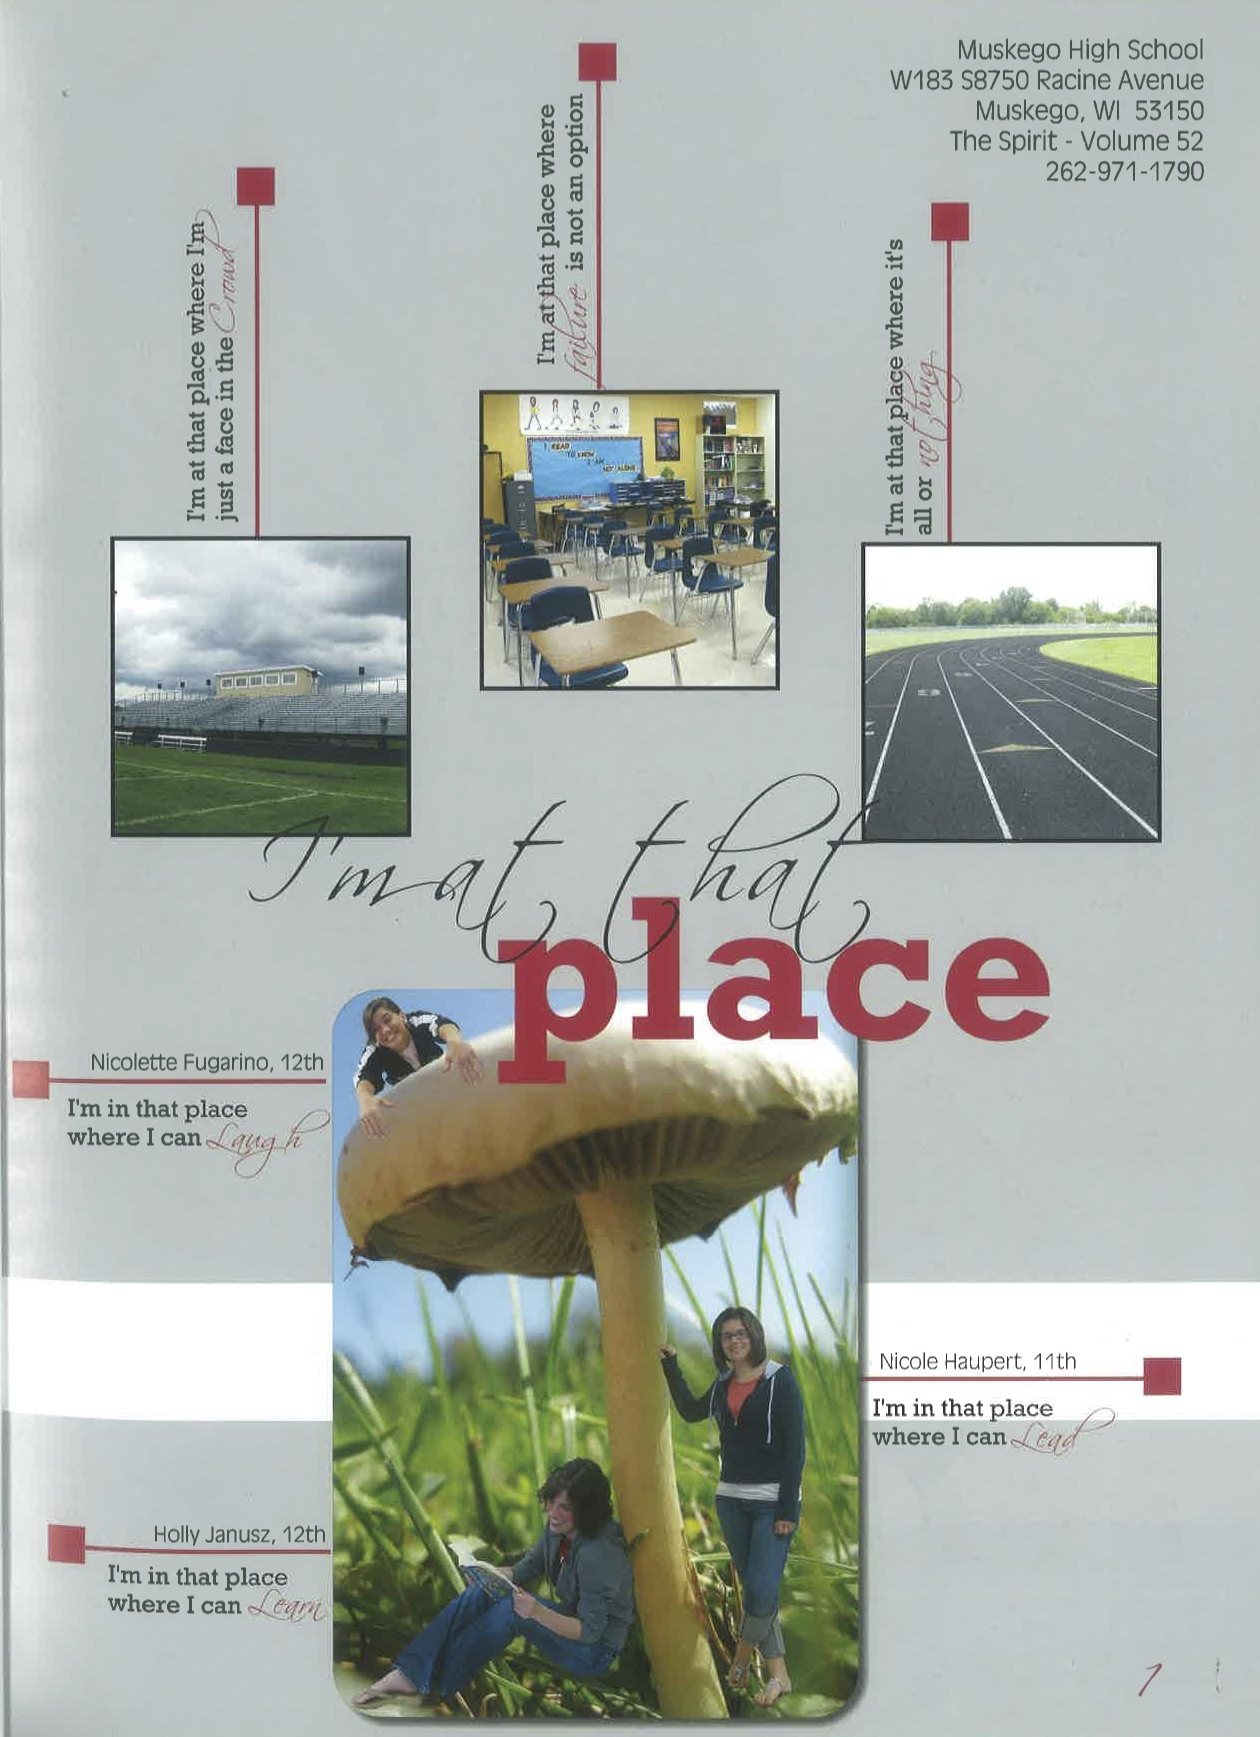 2010_Yearbook_1.jpg